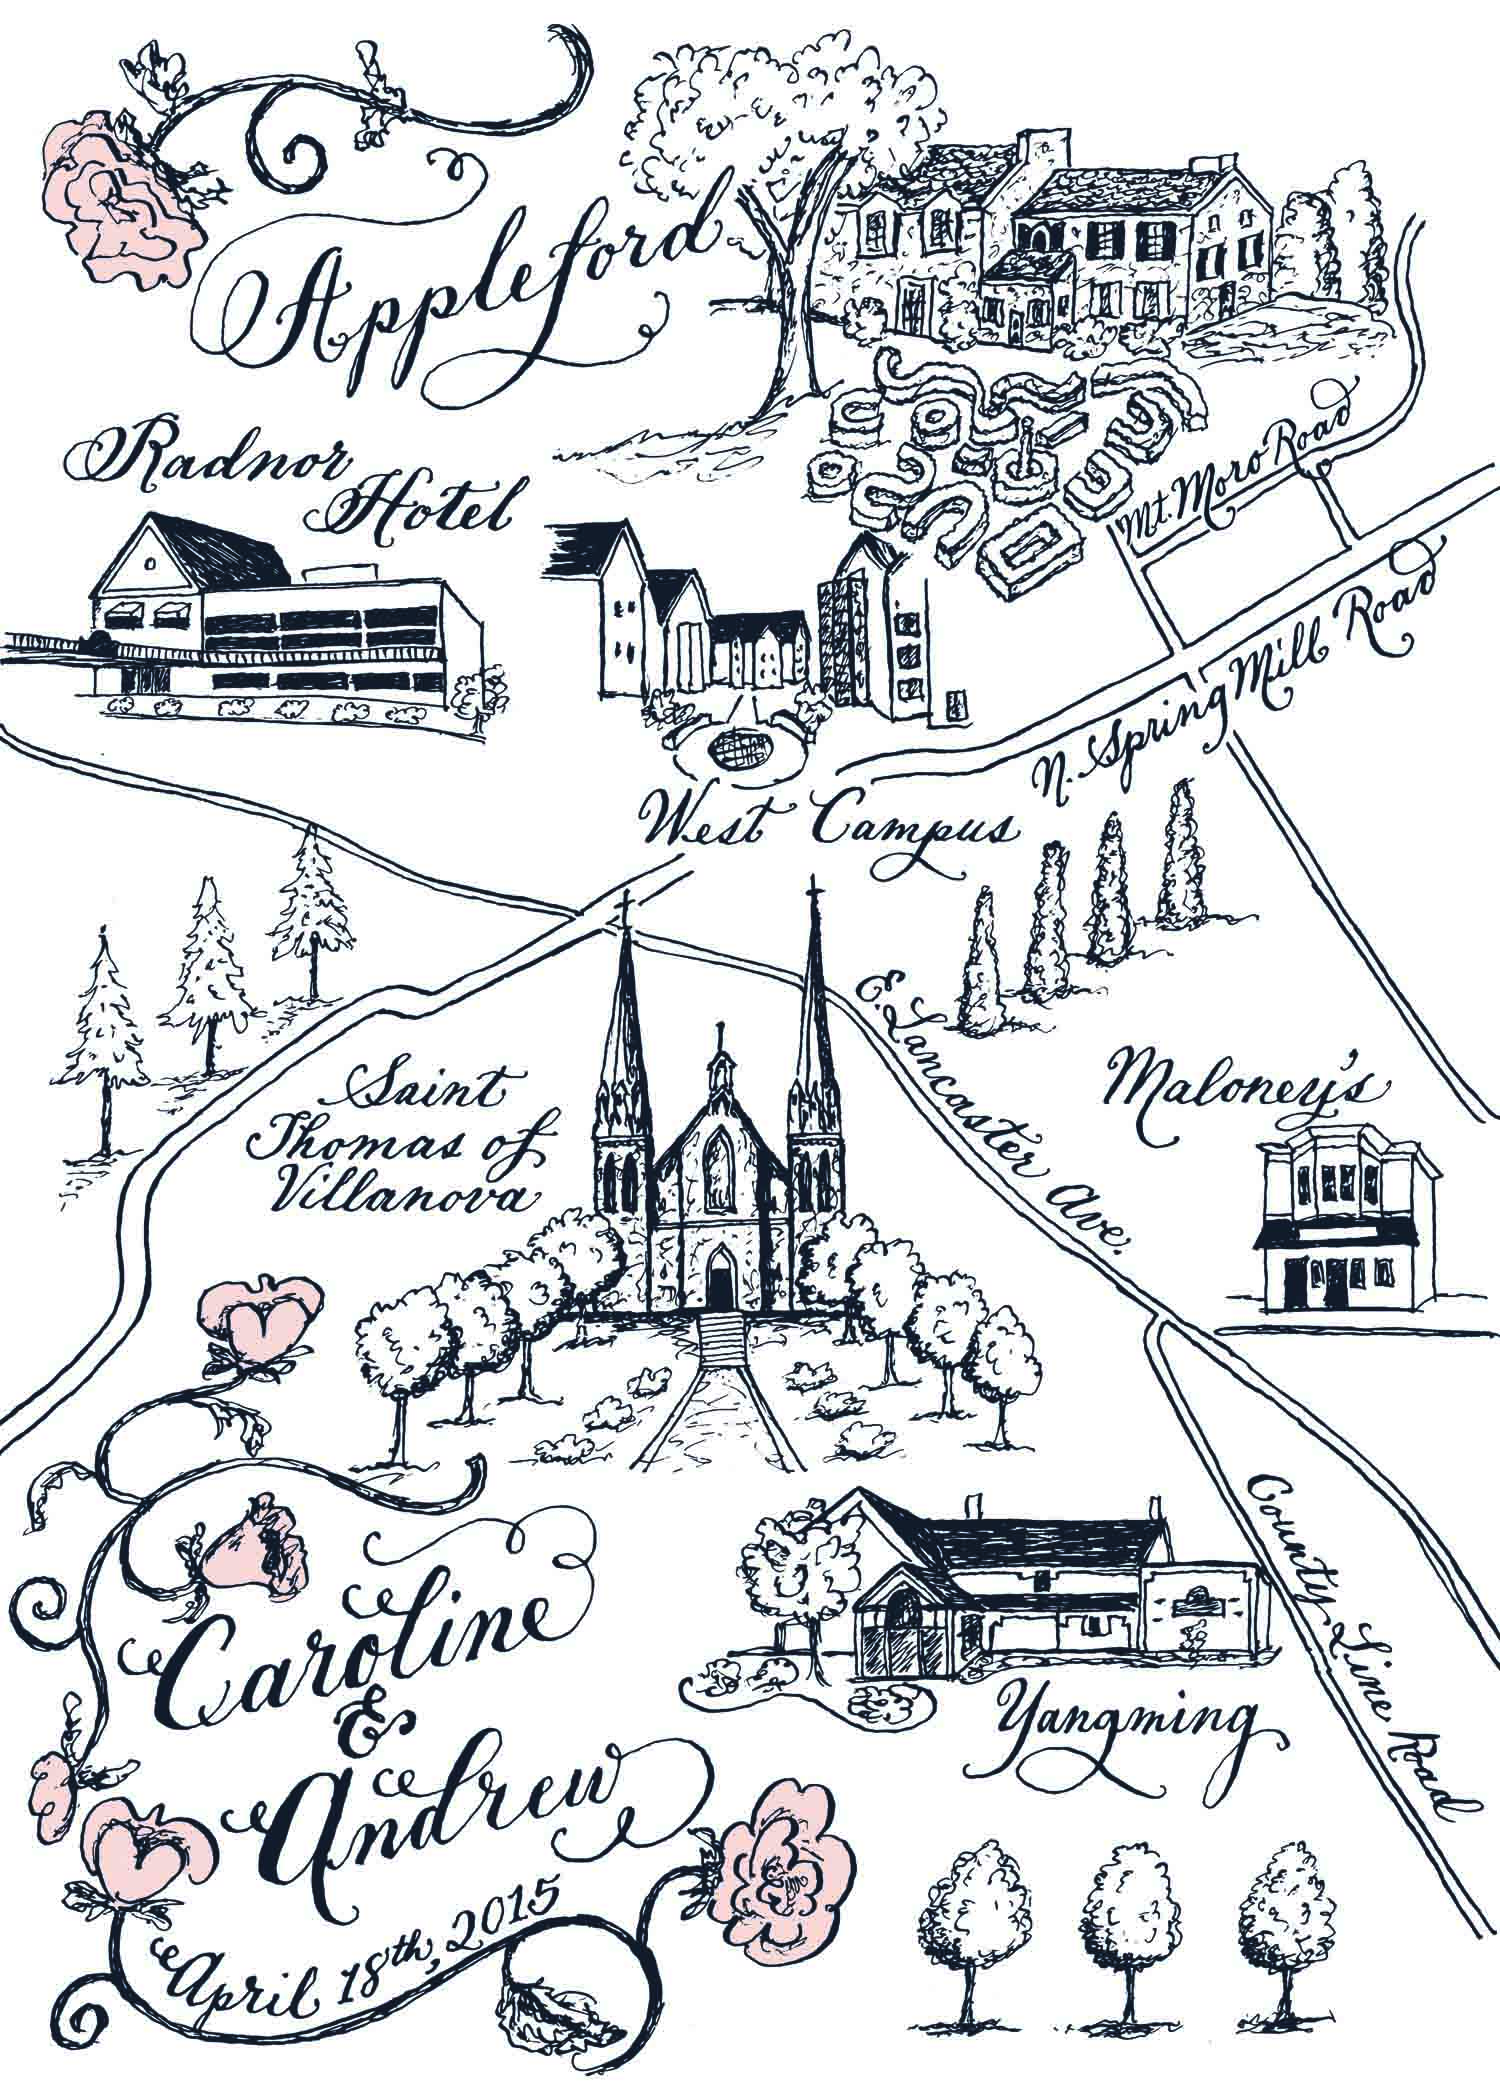 Caroline and Andrew Appleford wedding map by Robyn Love